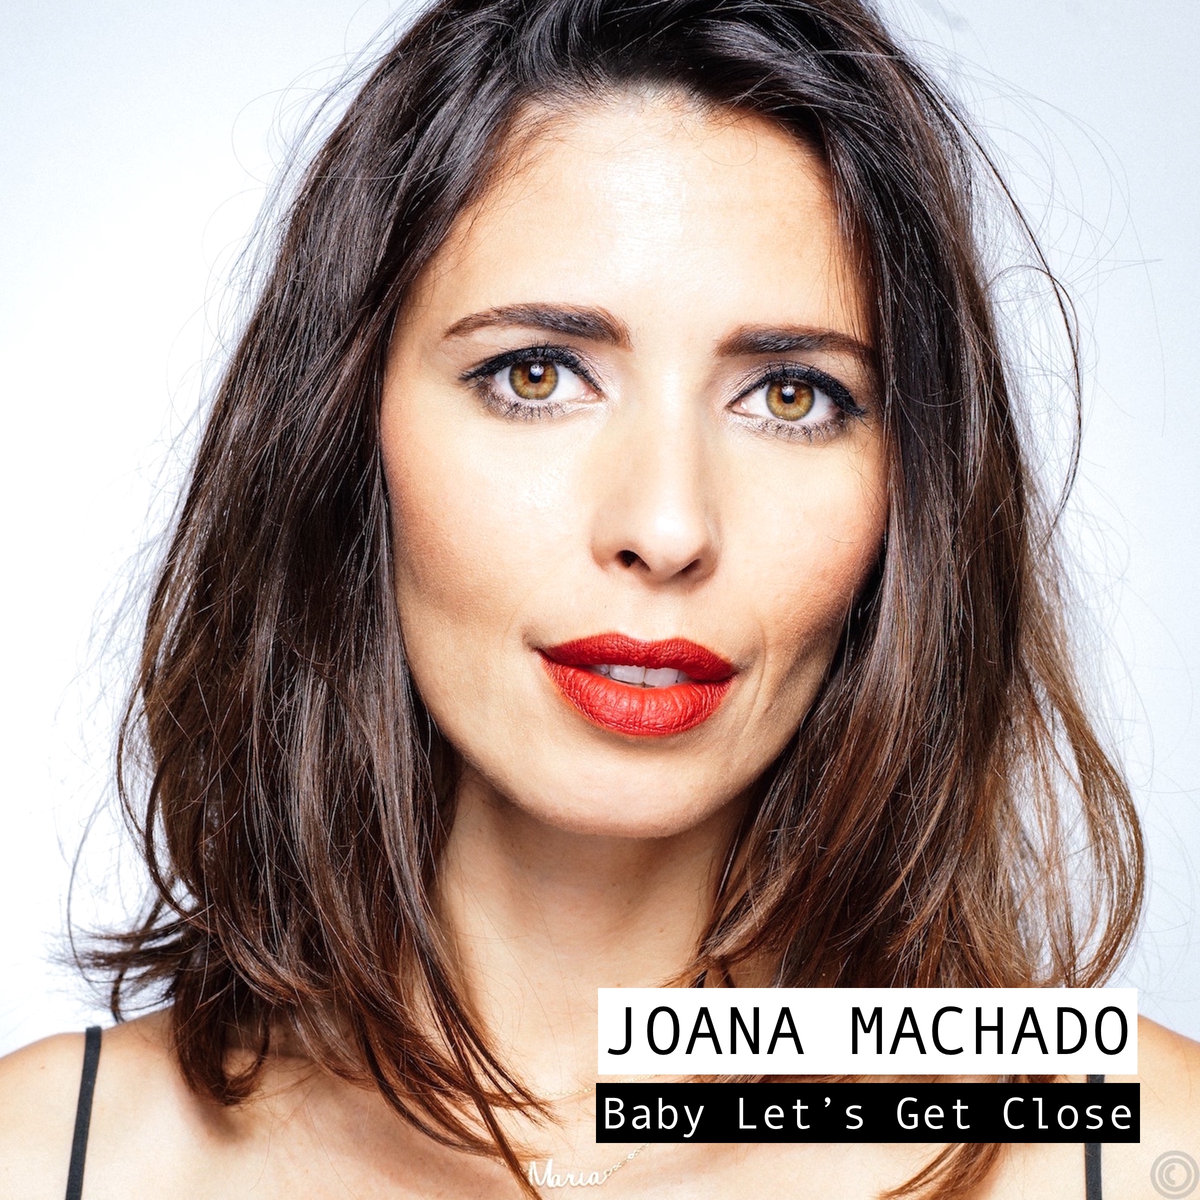 Baby-Let's-Get-Close-Joana-Machado